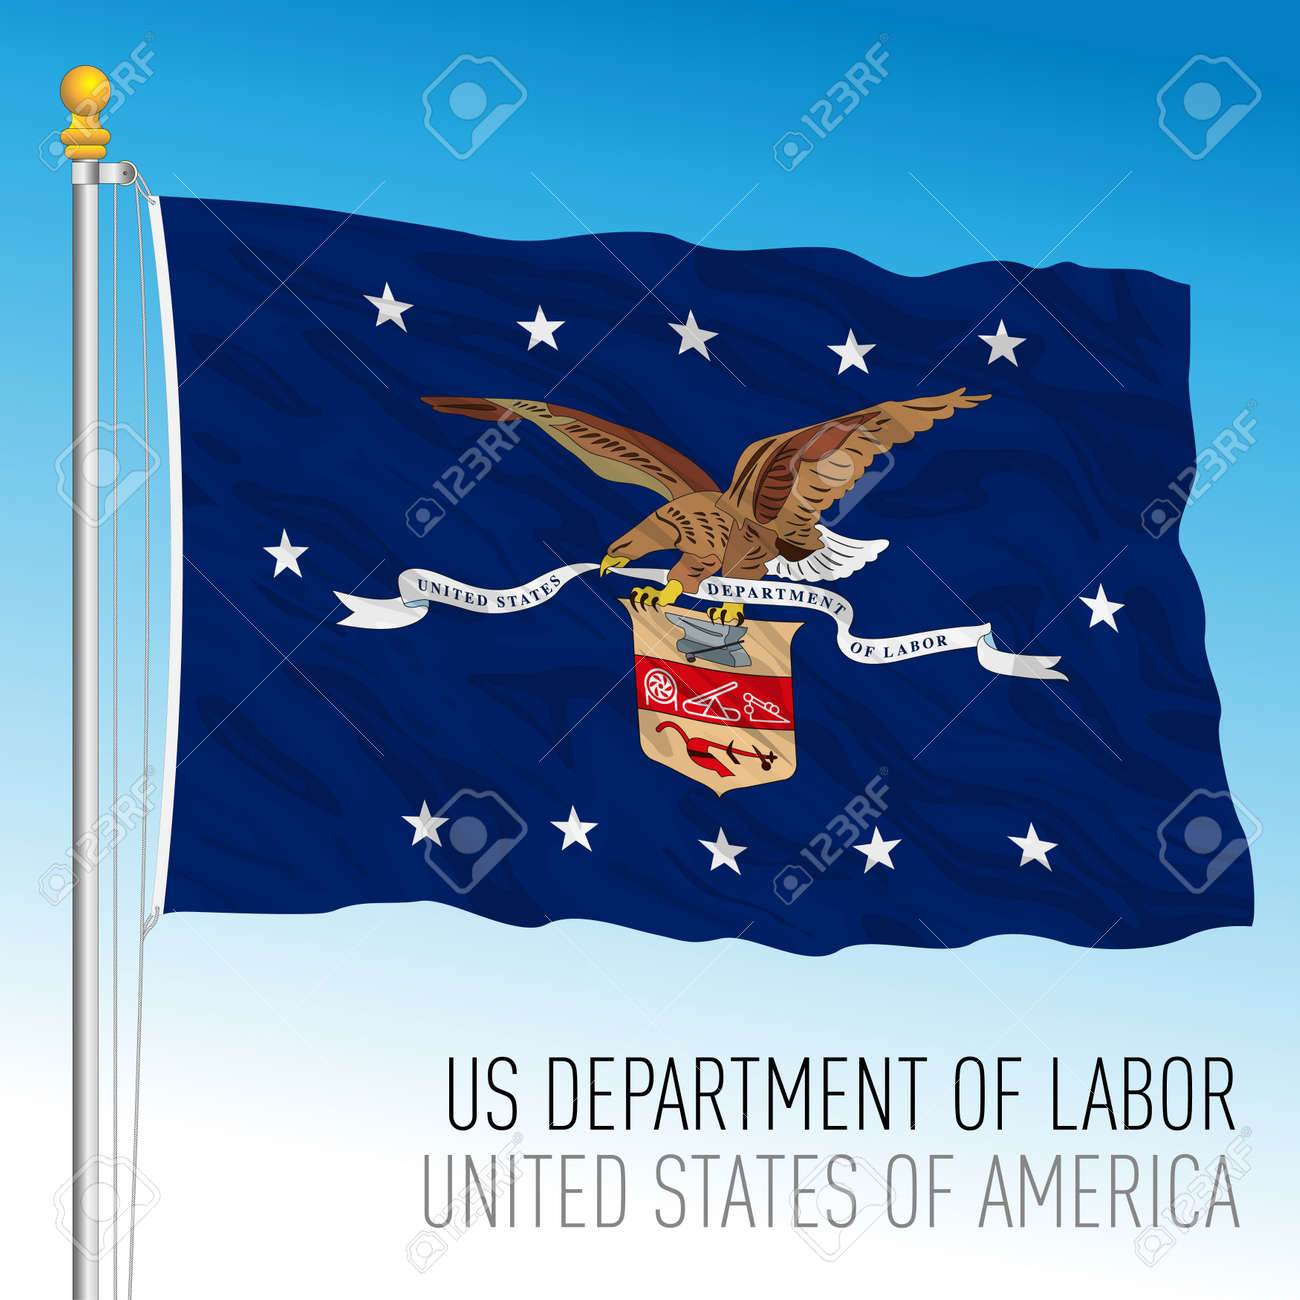 US Department of Labor flag, United States of America, vector illustration - 172855438